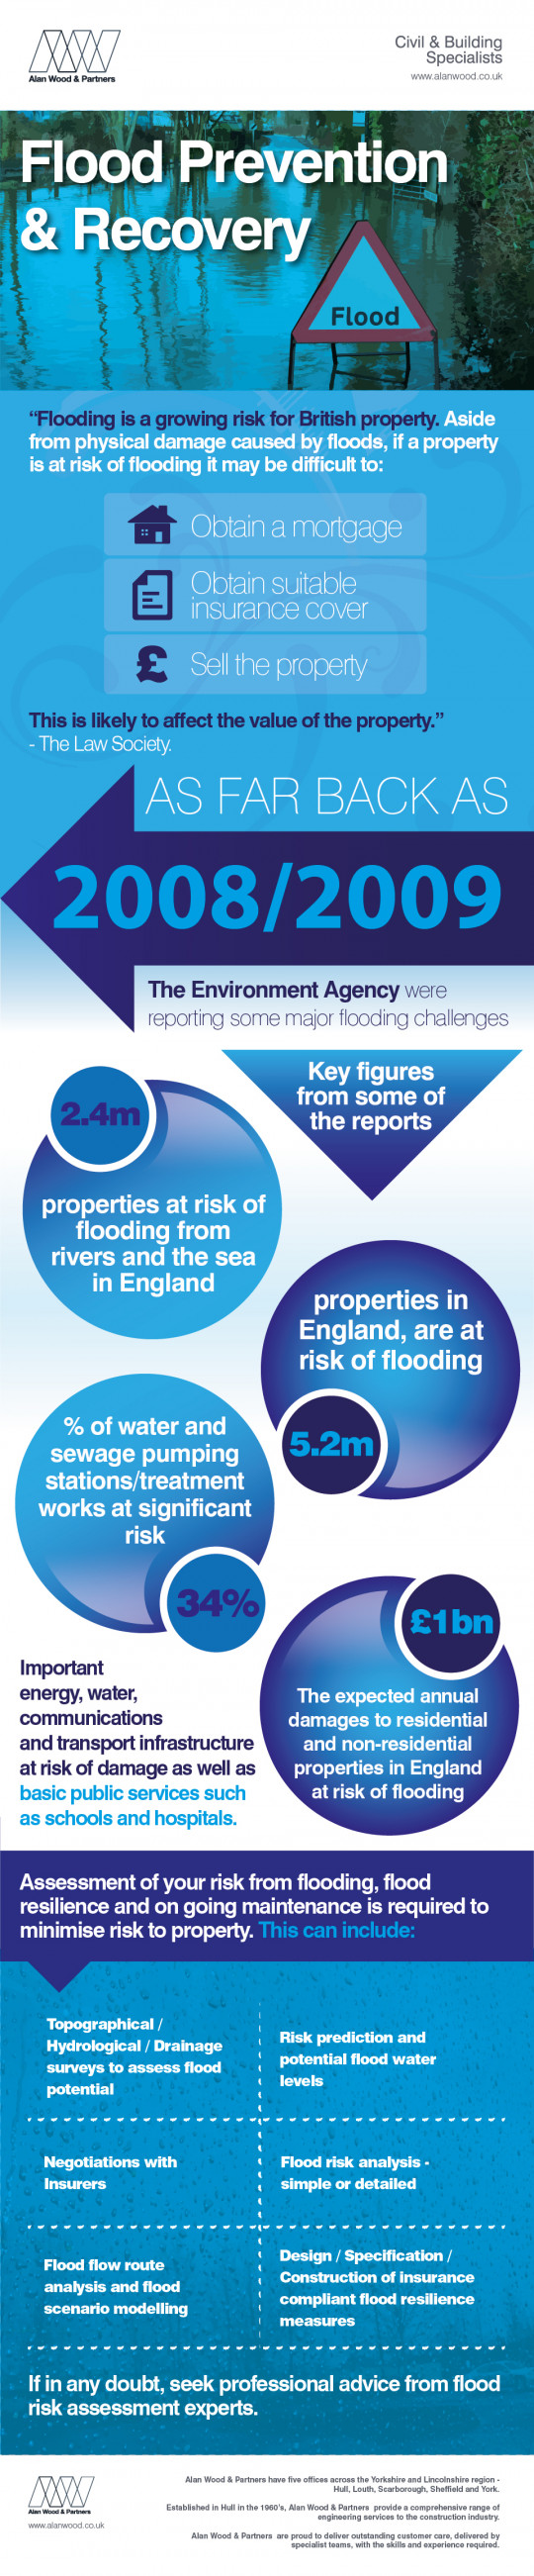 Flood Prevention & Recovery